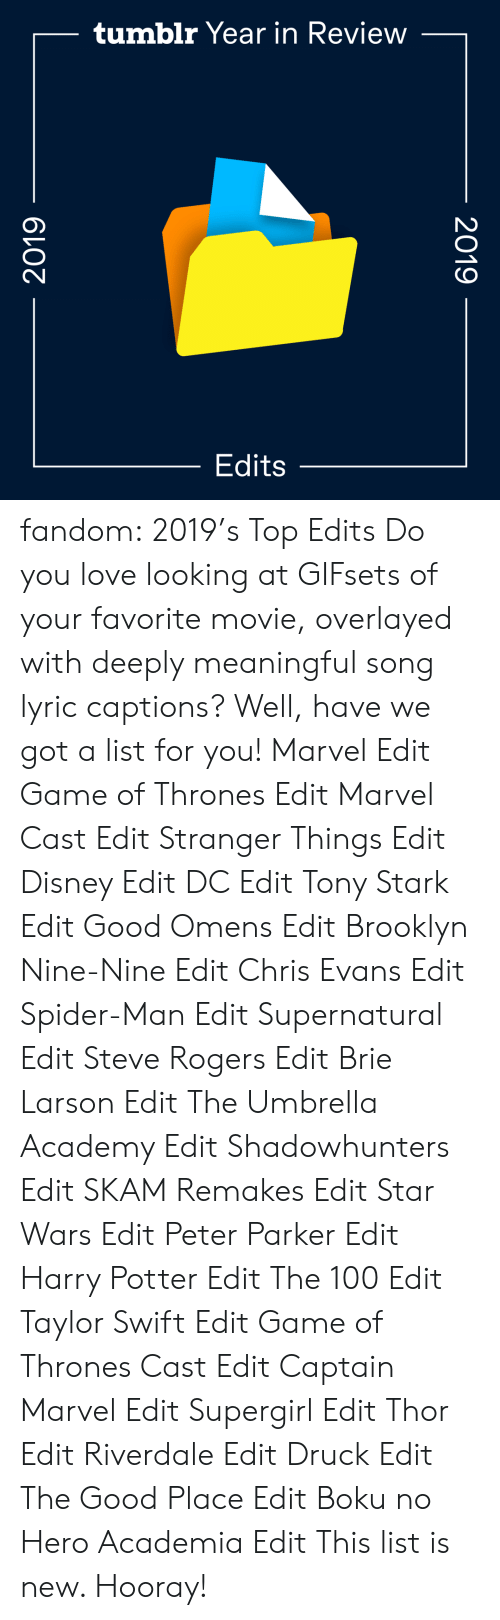 thrones: tumblr Year in Review  Edits  2019  2019 fandom:  2019's Top Edits  Do you love looking at GIFsets of your favorite movie, overlayed with deeply meaningful song lyric captions? Well, have we got a list for you!  Marvel Edit  Game of Thrones Edit  Marvel Cast Edit  Stranger Things Edit  Disney Edit  DC Edit  Tony Stark Edit  Good Omens Edit  Brooklyn Nine-Nine Edit  Chris Evans Edit  Spider-Man Edit  Supernatural Edit  Steve Rogers Edit  Brie Larson Edit  The Umbrella Academy Edit  Shadowhunters Edit  SKAM Remakes Edit  Star Wars Edit  Peter Parker Edit  Harry Potter Edit  The 100 Edit  Taylor Swift Edit  Game of Thrones Cast Edit  Captain Marvel Edit  Supergirl Edit  Thor Edit  Riverdale Edit  Druck Edit  The Good Place Edit  Boku no Hero Academia Edit This list is new. Hooray!